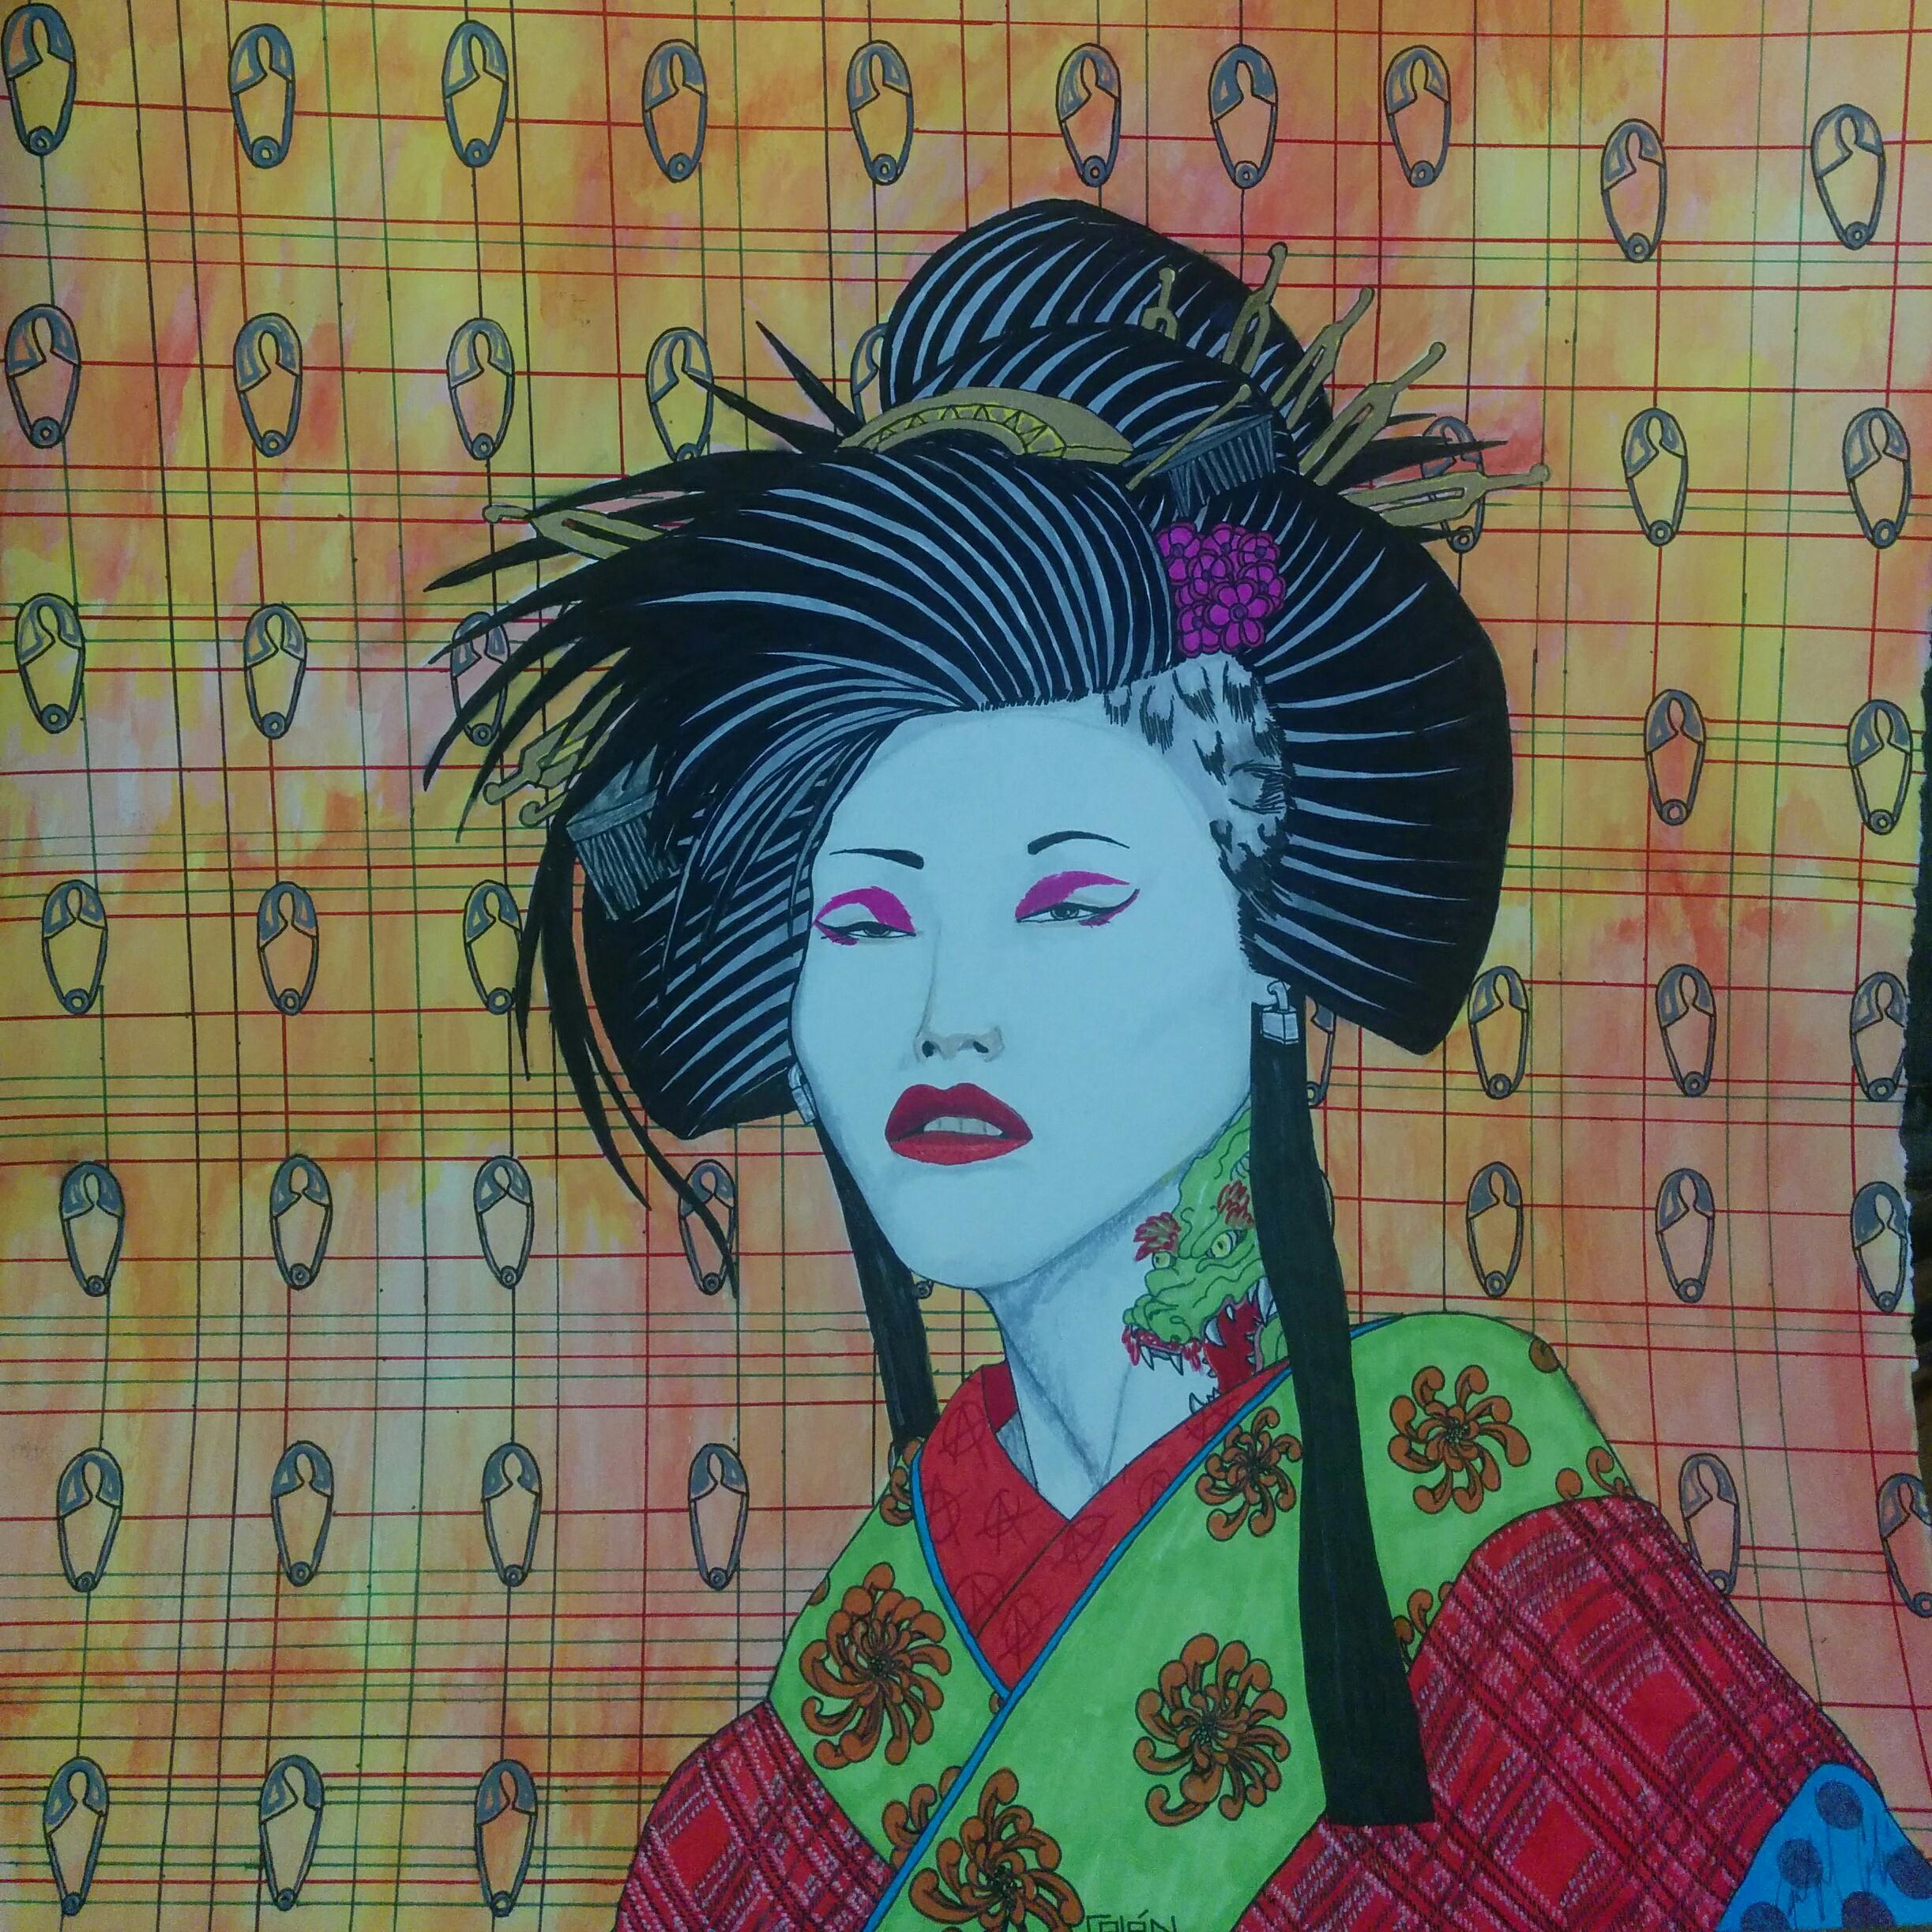 Punk rock Geisha